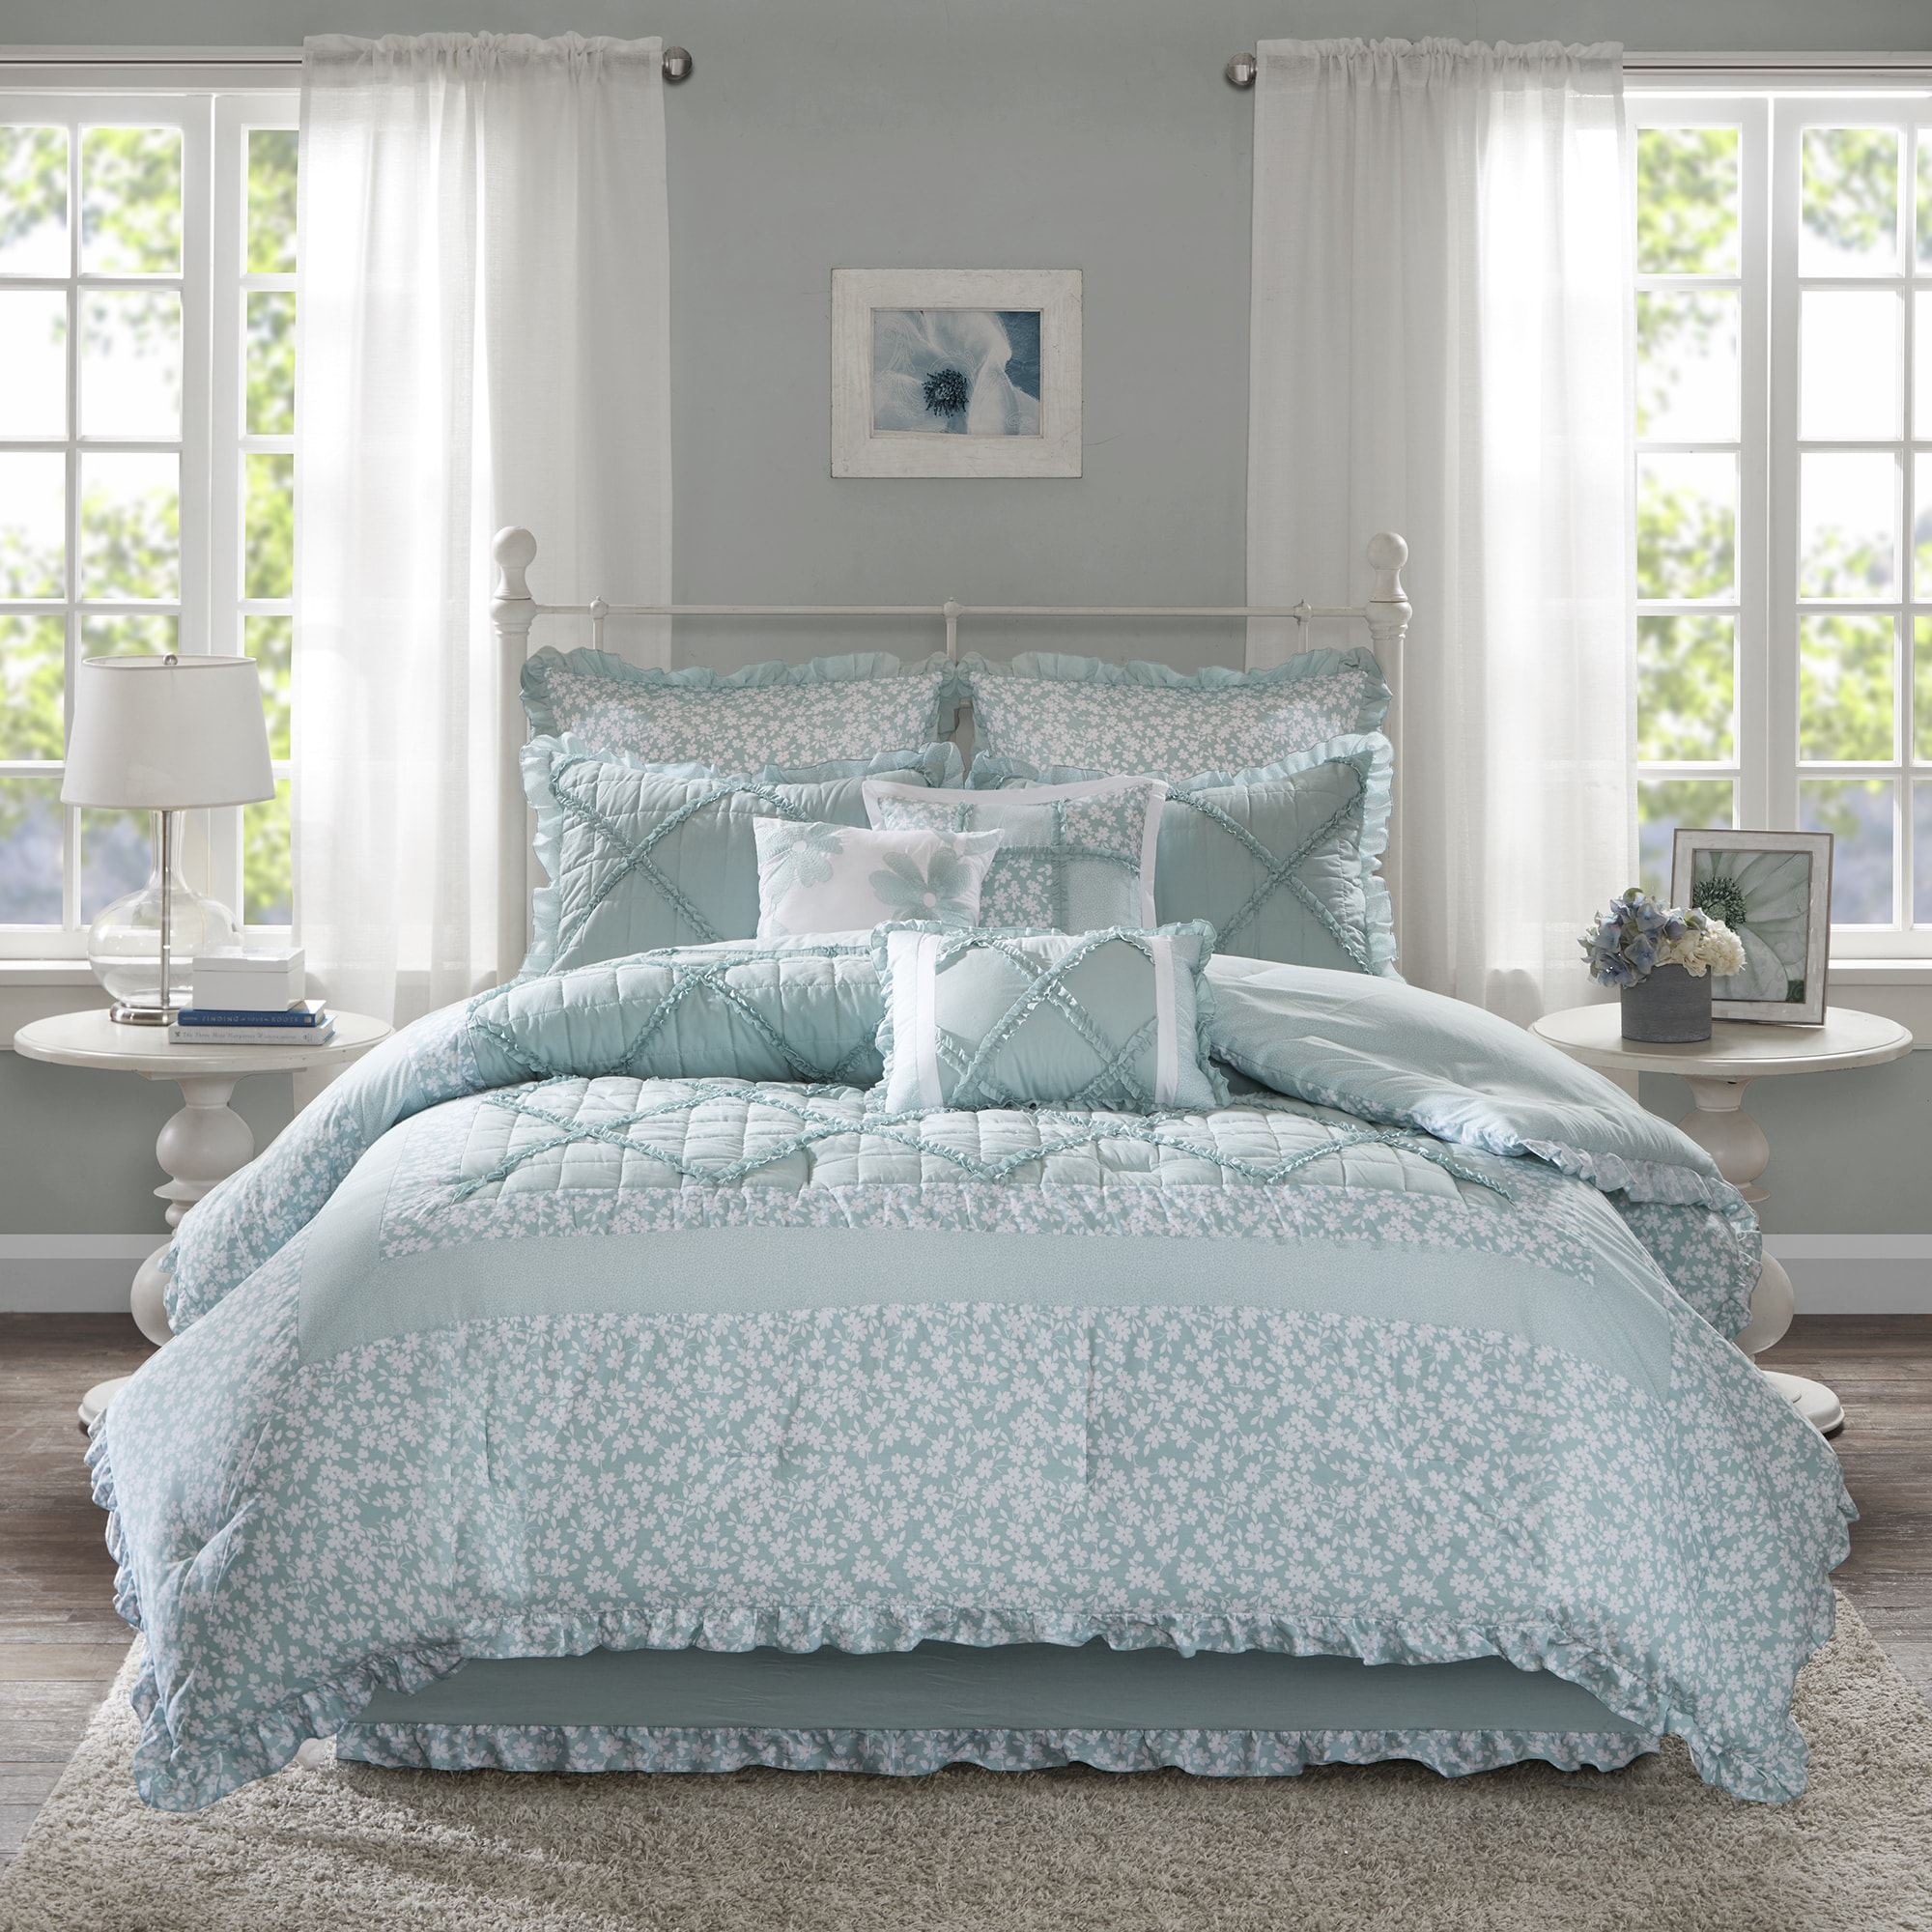 set piece essence ip waikiki com walmart comforter home bedding